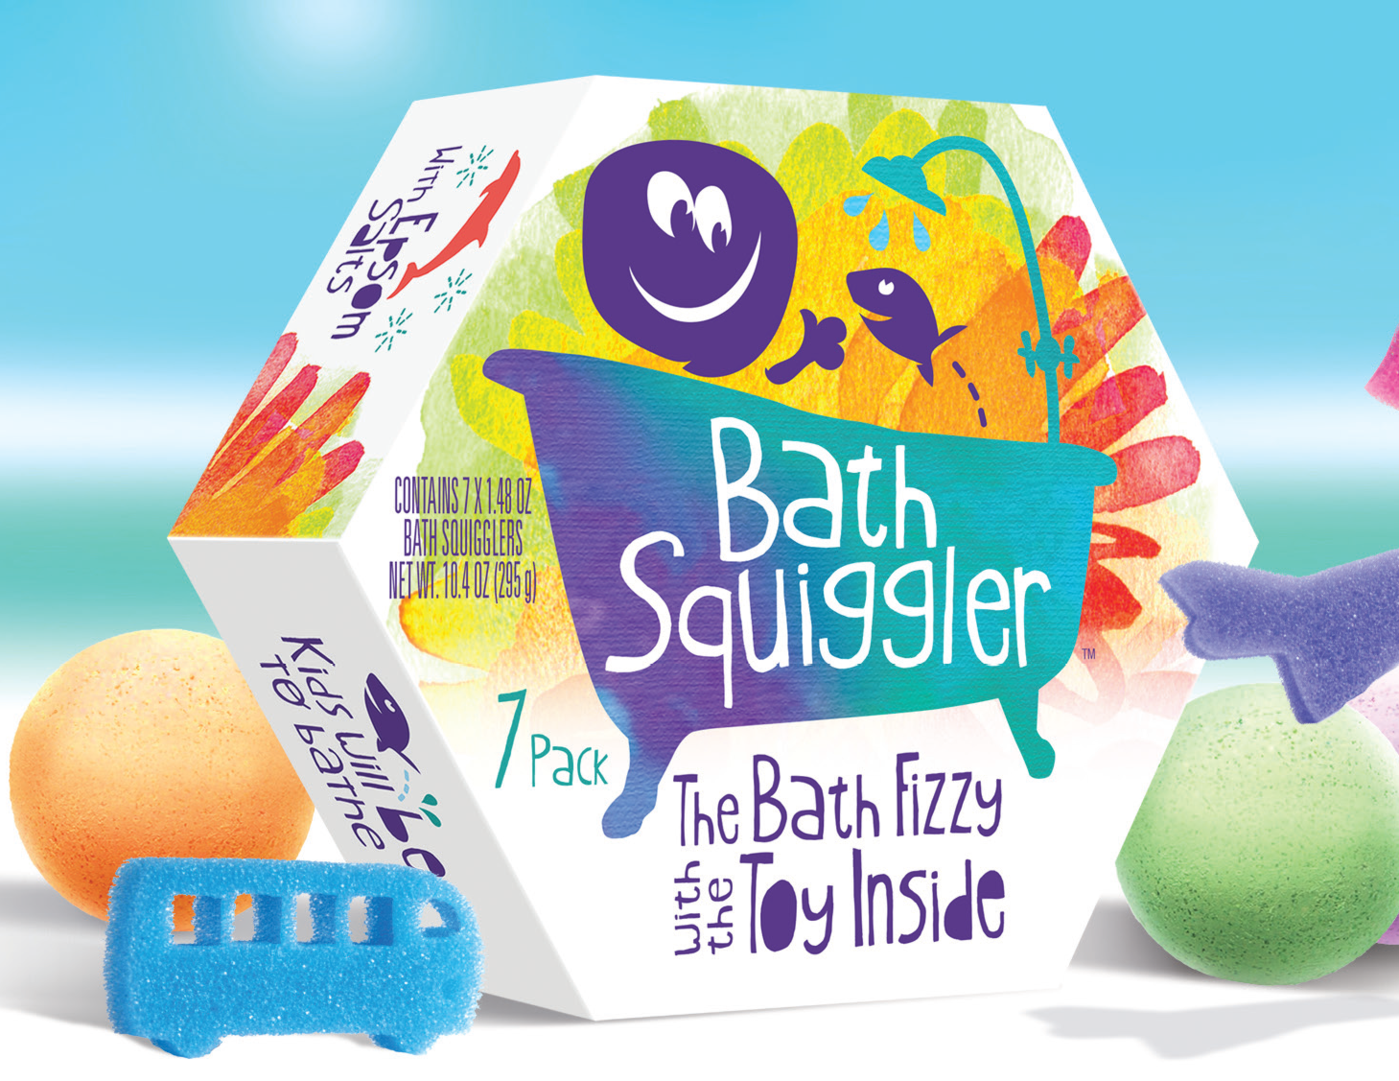 🍁    Loot Toys Bath Squigglers    These fun, lightly scented bath squigglers will fizzle away, leaving the bath a fun colour. Once fully dissolved, a sponge toy is revealed. Hand-made, safe, non-toxic and 99.5% natural, Squigglers are ASTM, CE, CPSIA and Health Canada approved for children over 3. Vegan, Gluten-free. Food and cosmetic grade, Your kids will beg to bathe!